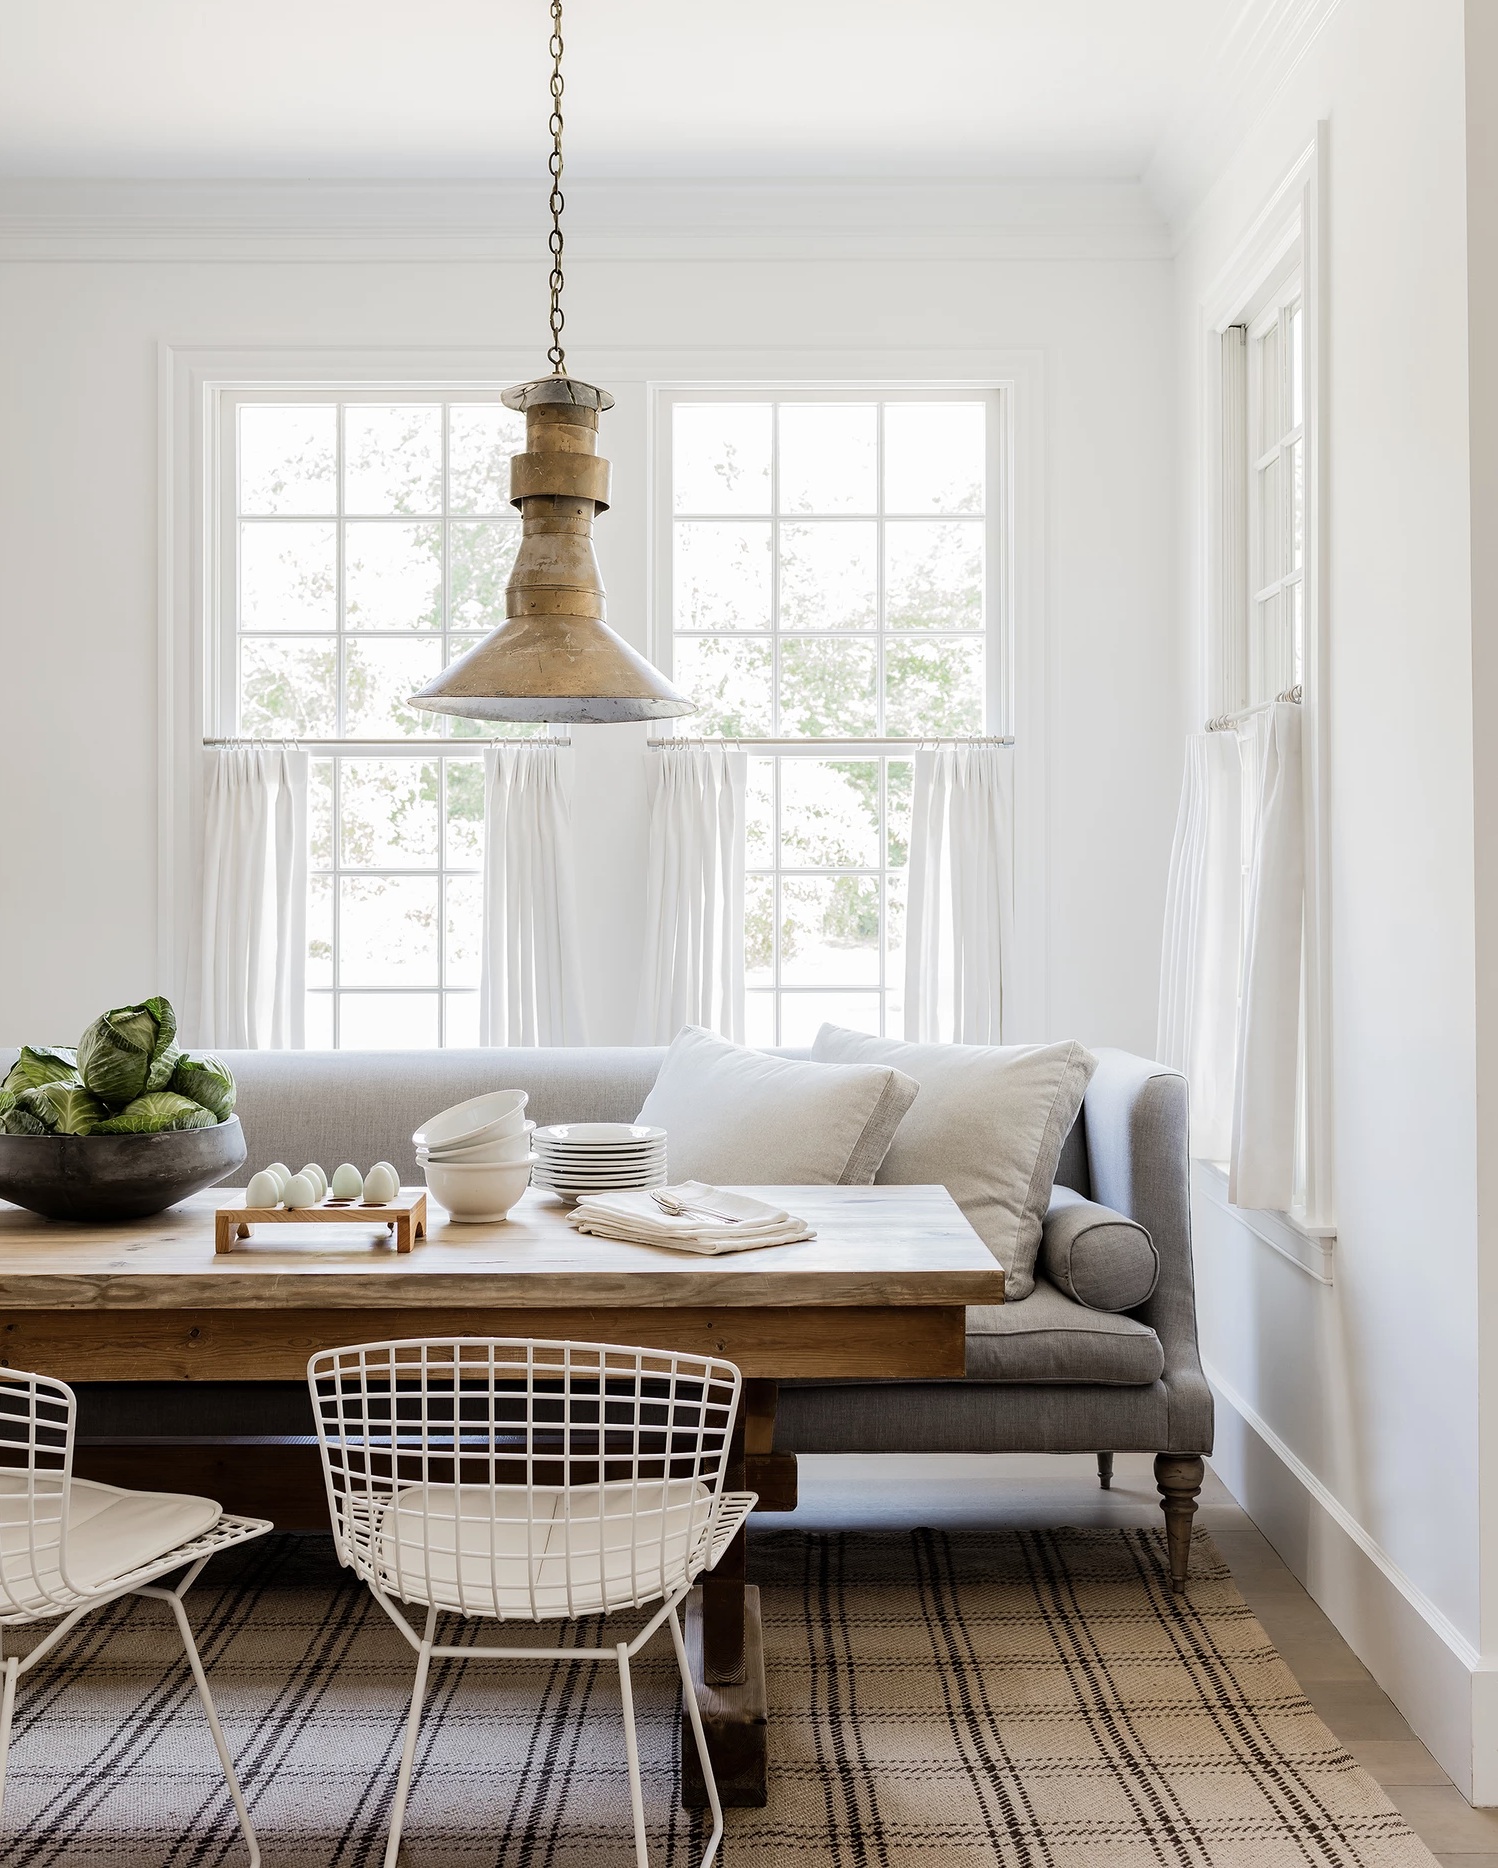 Why Incorporating Vintage Sets Your Design Apart - The Identité Collective